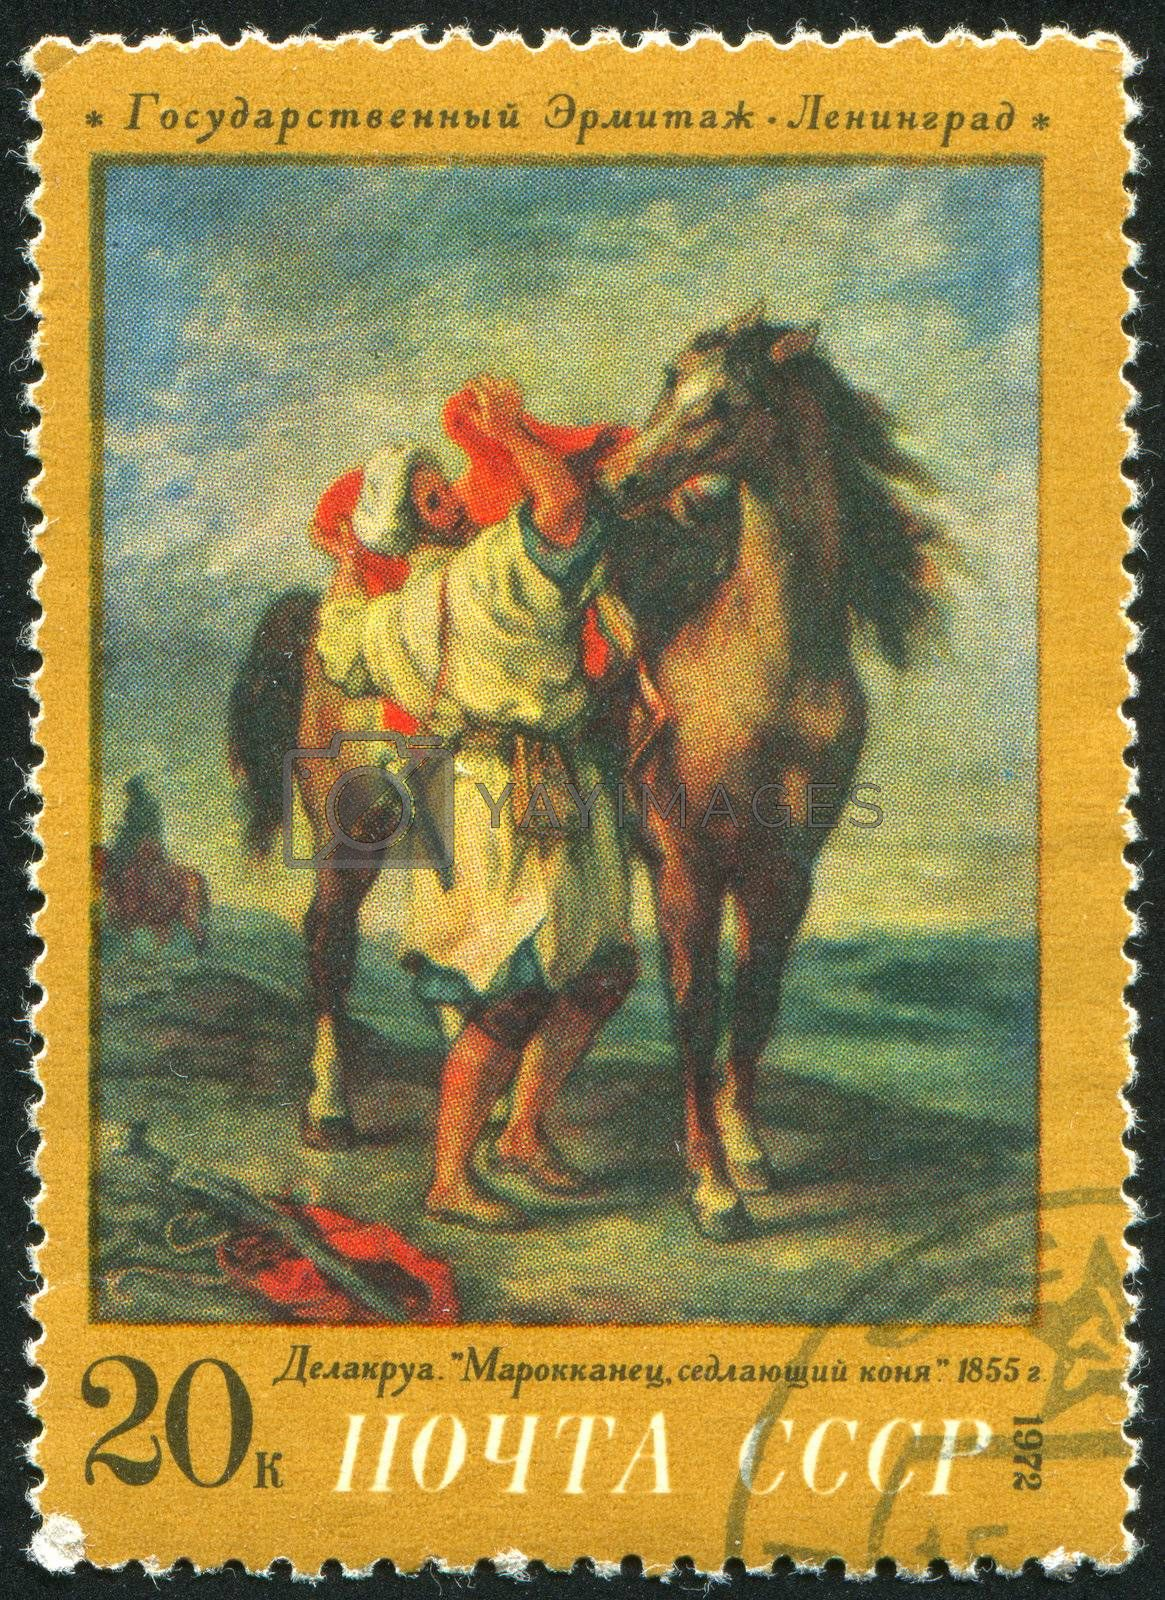 RUSSIA - CIRCA 1972: stamp printed by Russia, shows Moroccan Saddling Steed, Delacroix, circa 1972